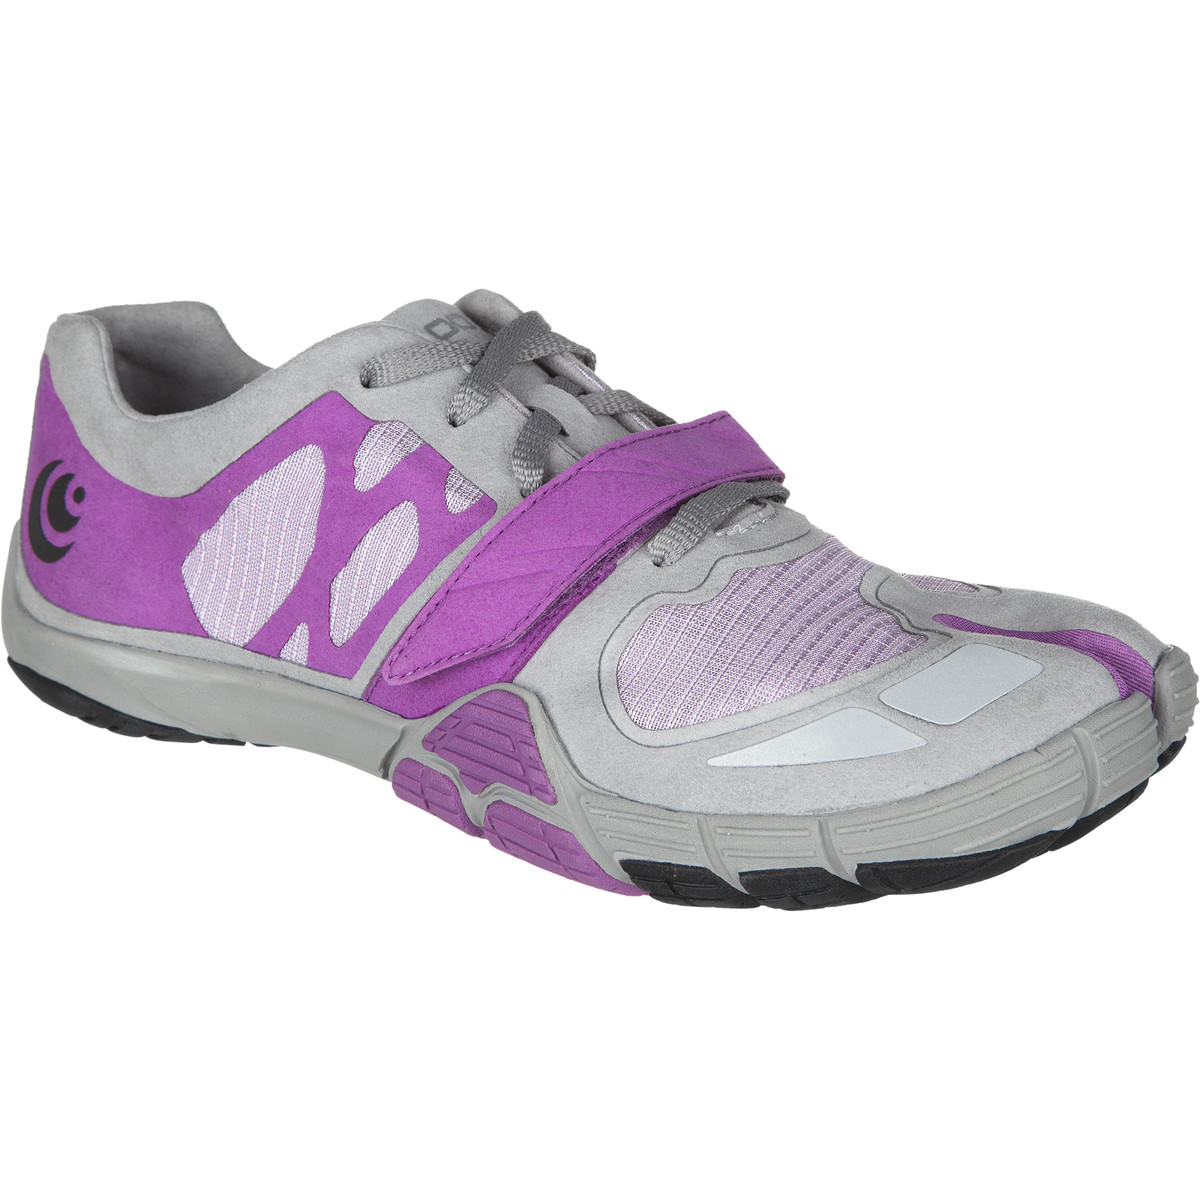 Topo Athletic RX Training Shoe